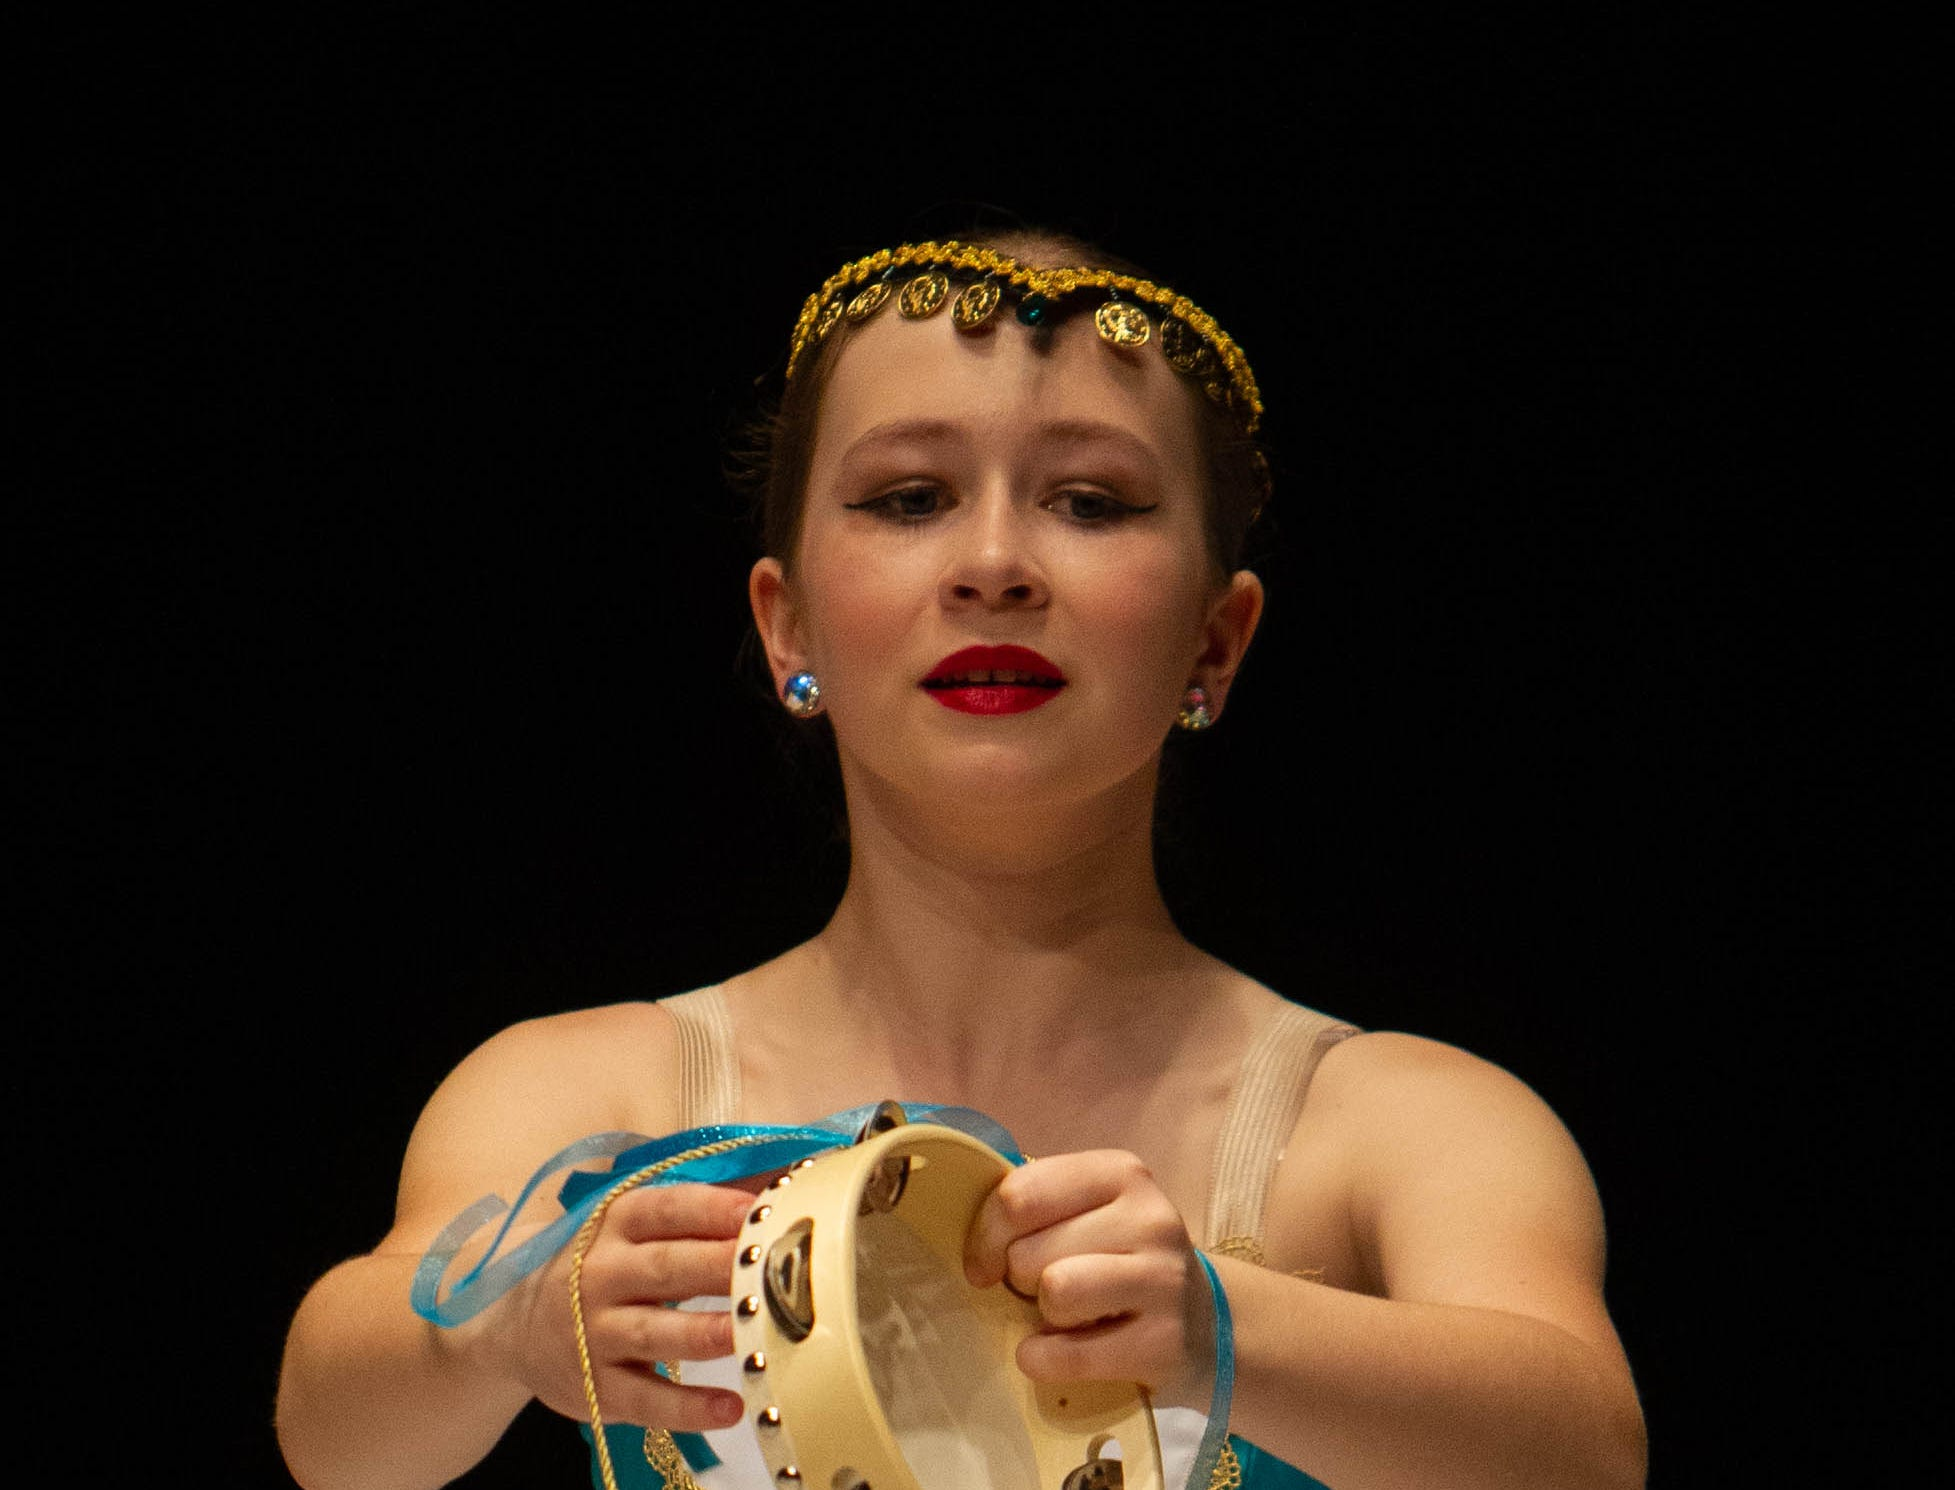 Amelia Overstreet competes at the inaugural year of Grand Jeté dance competition in the Junior Ballet division, at the South Carolina Governor's School for the Arts and Humanities, on Saturday, March 2, 2019.